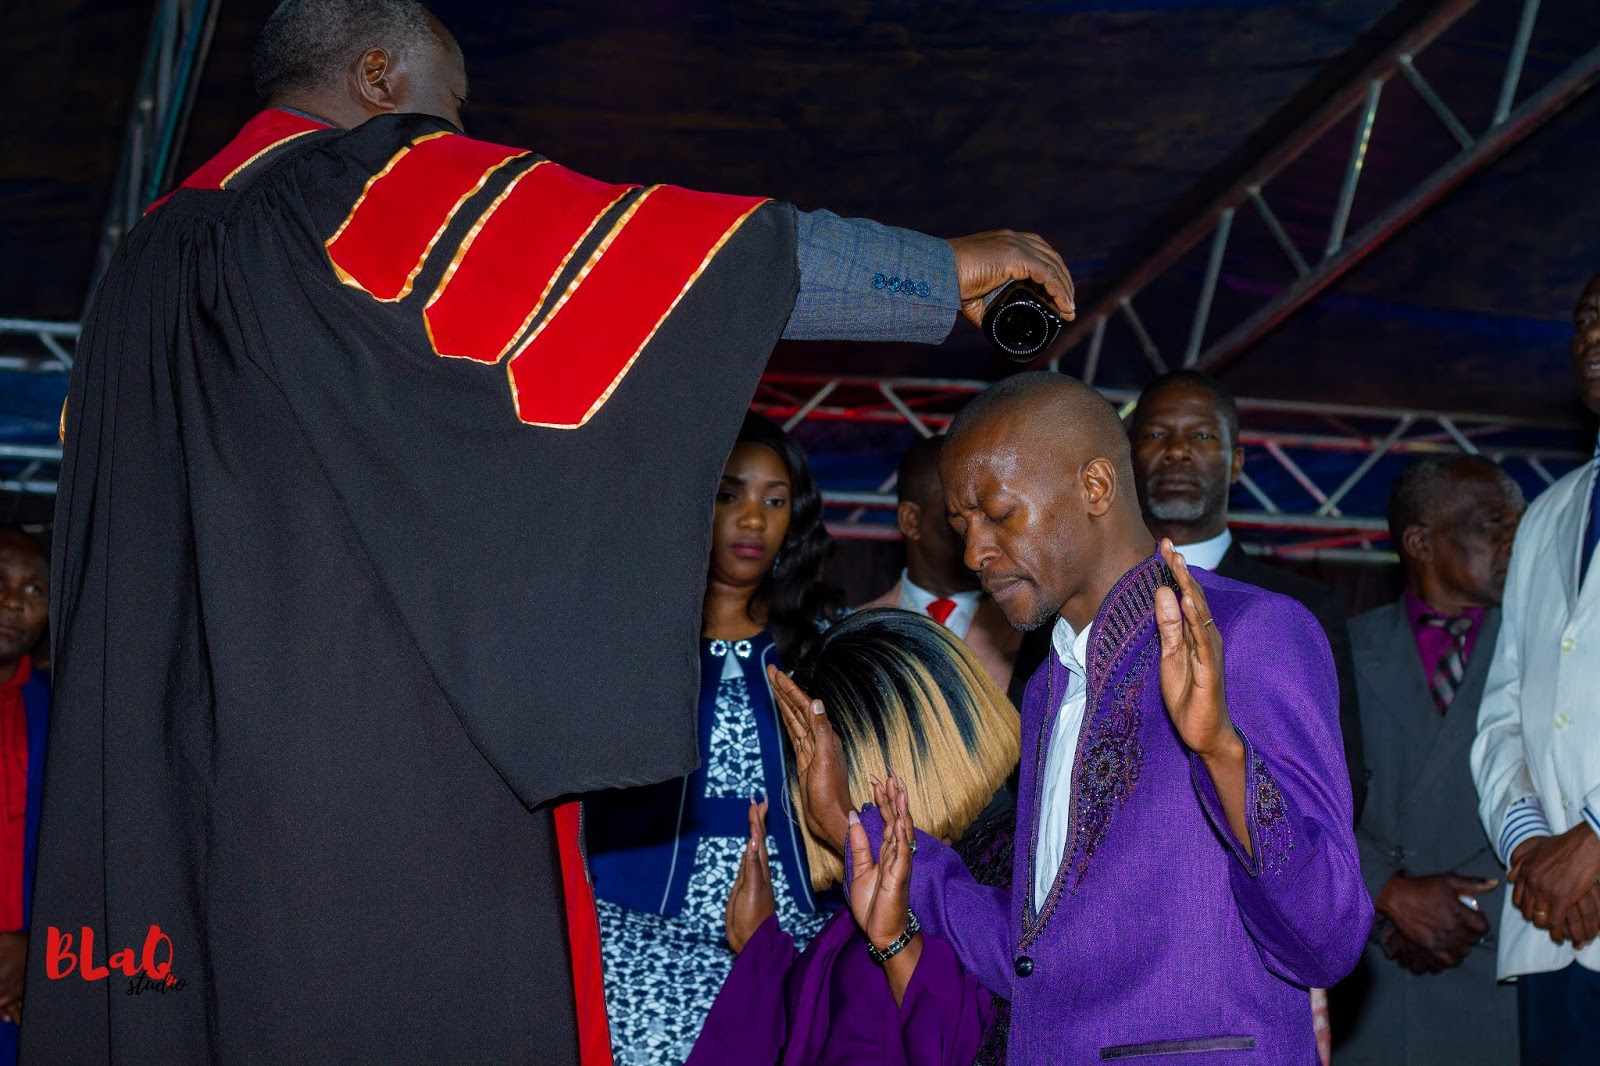 Apostle Jonas Quembo Congratulates Apostle Pride Sibiya On His Bishopric Consecration